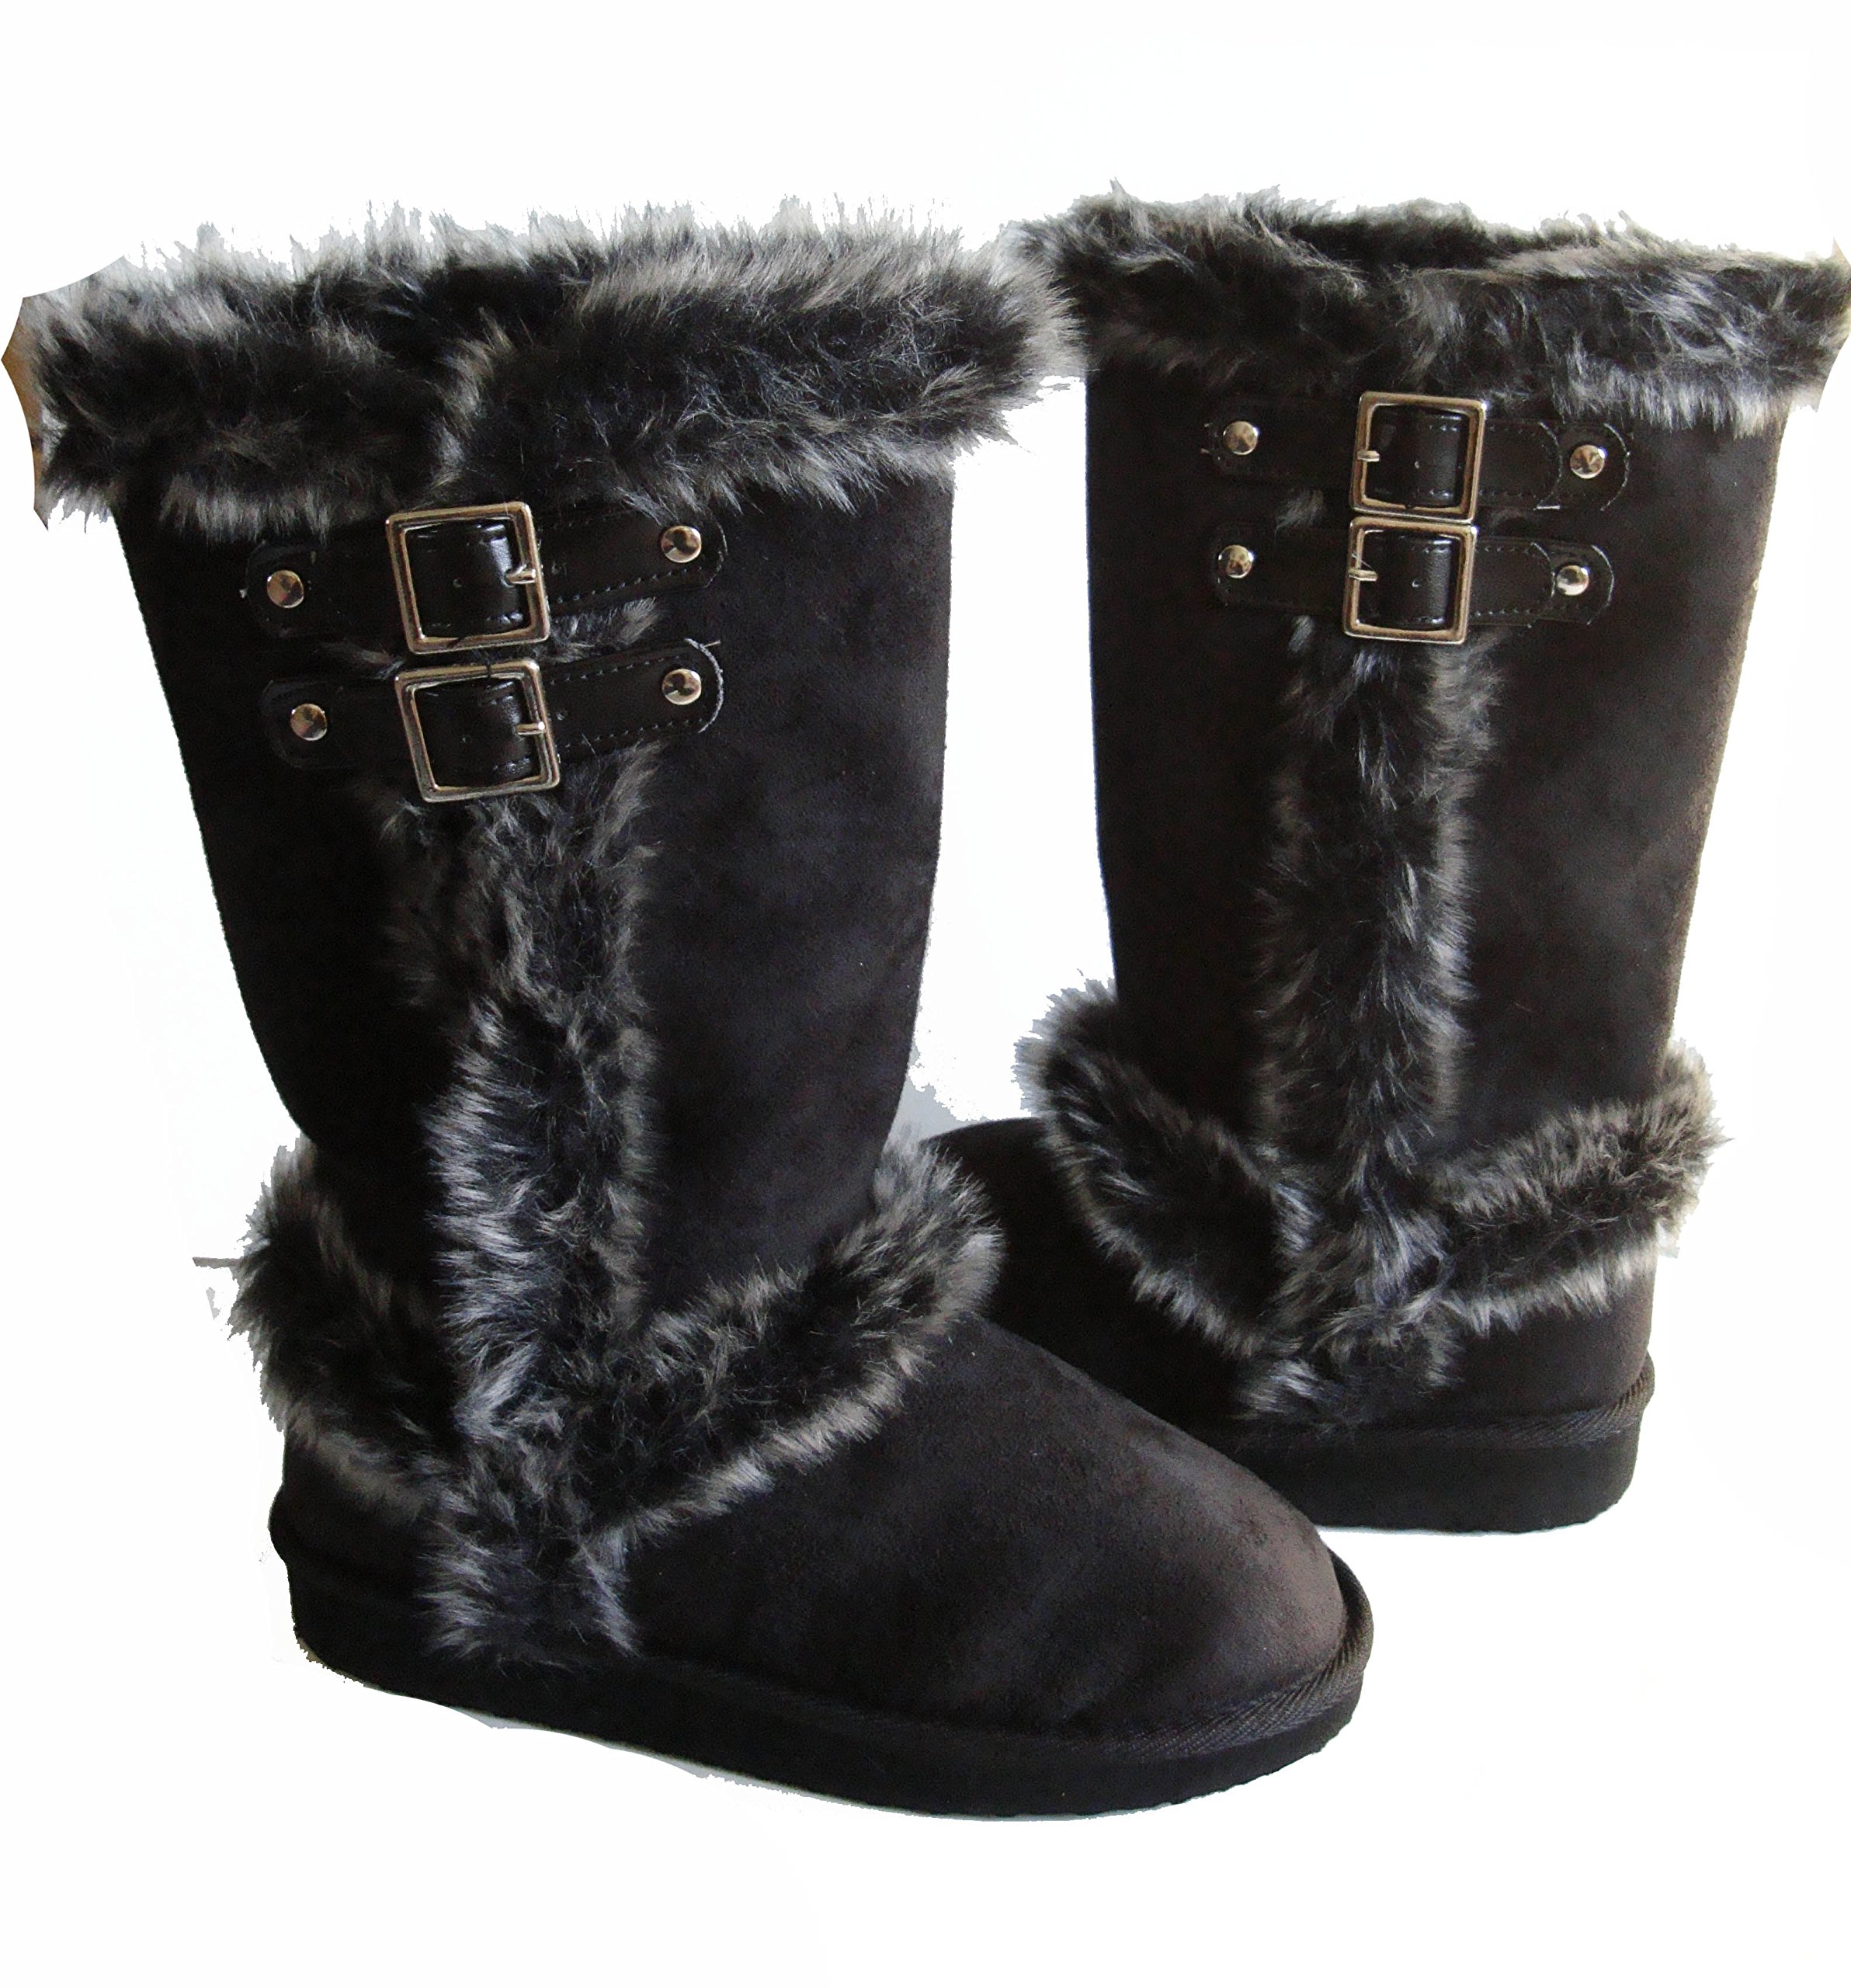 Qupid/Top Moda Faux Fur Lined Mid-calf Boots with Buckles for Women (5.5, Black)